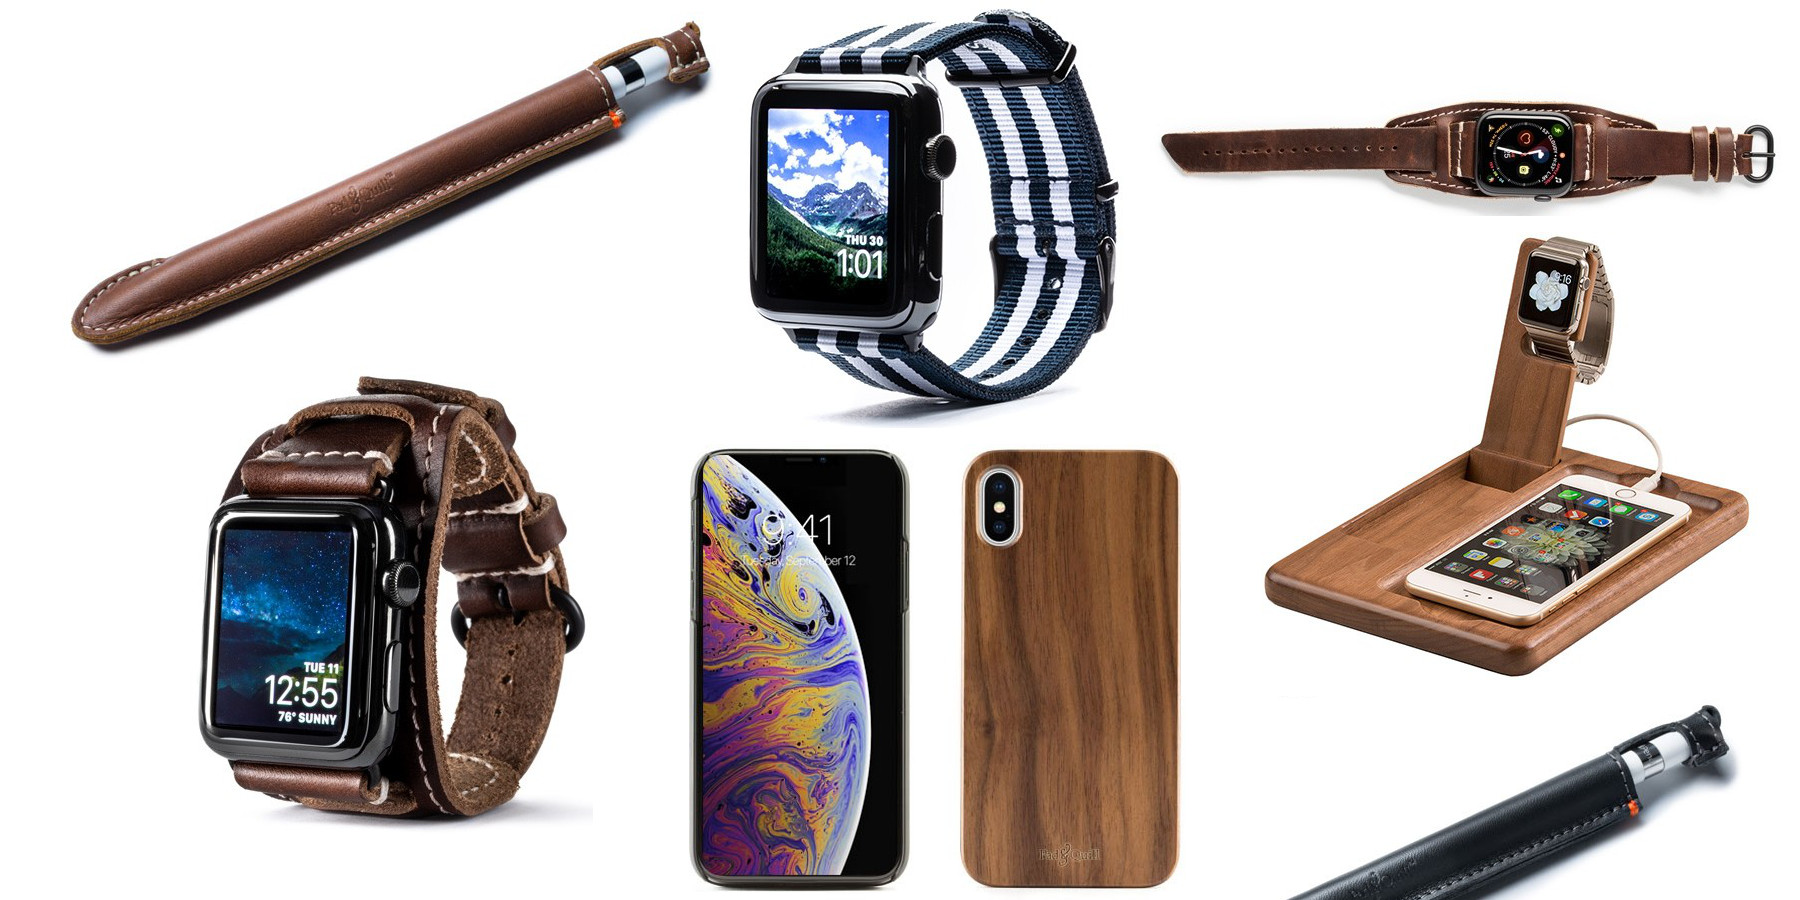 Pad & Quill offers Apple Watch bands, iPhone cases, bags, more from $18 (up to 45% off)